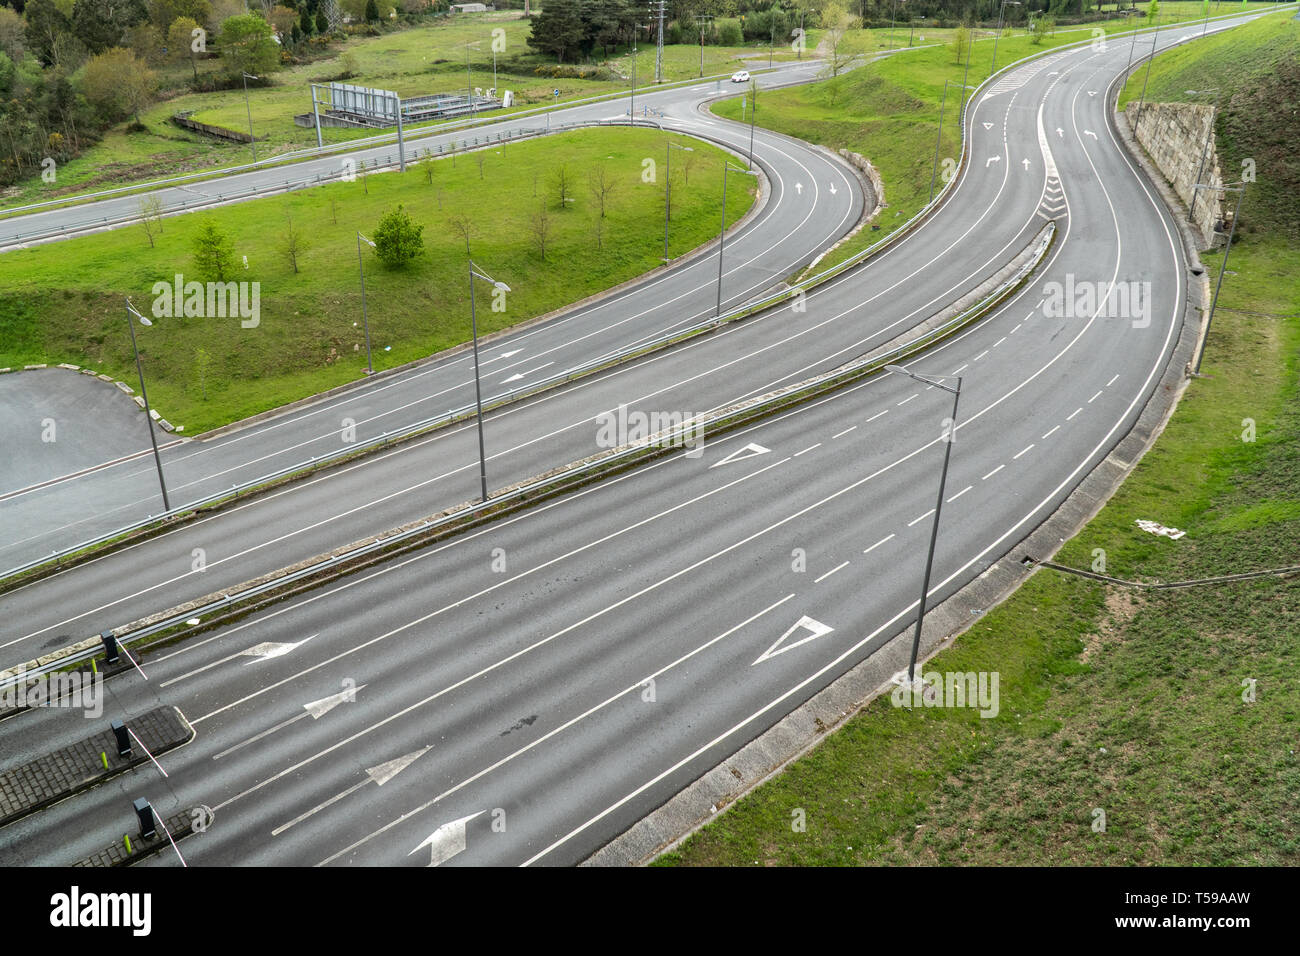 Many roads view from above with no vehicles. Infrastructure or road engineering concept - Stock Image